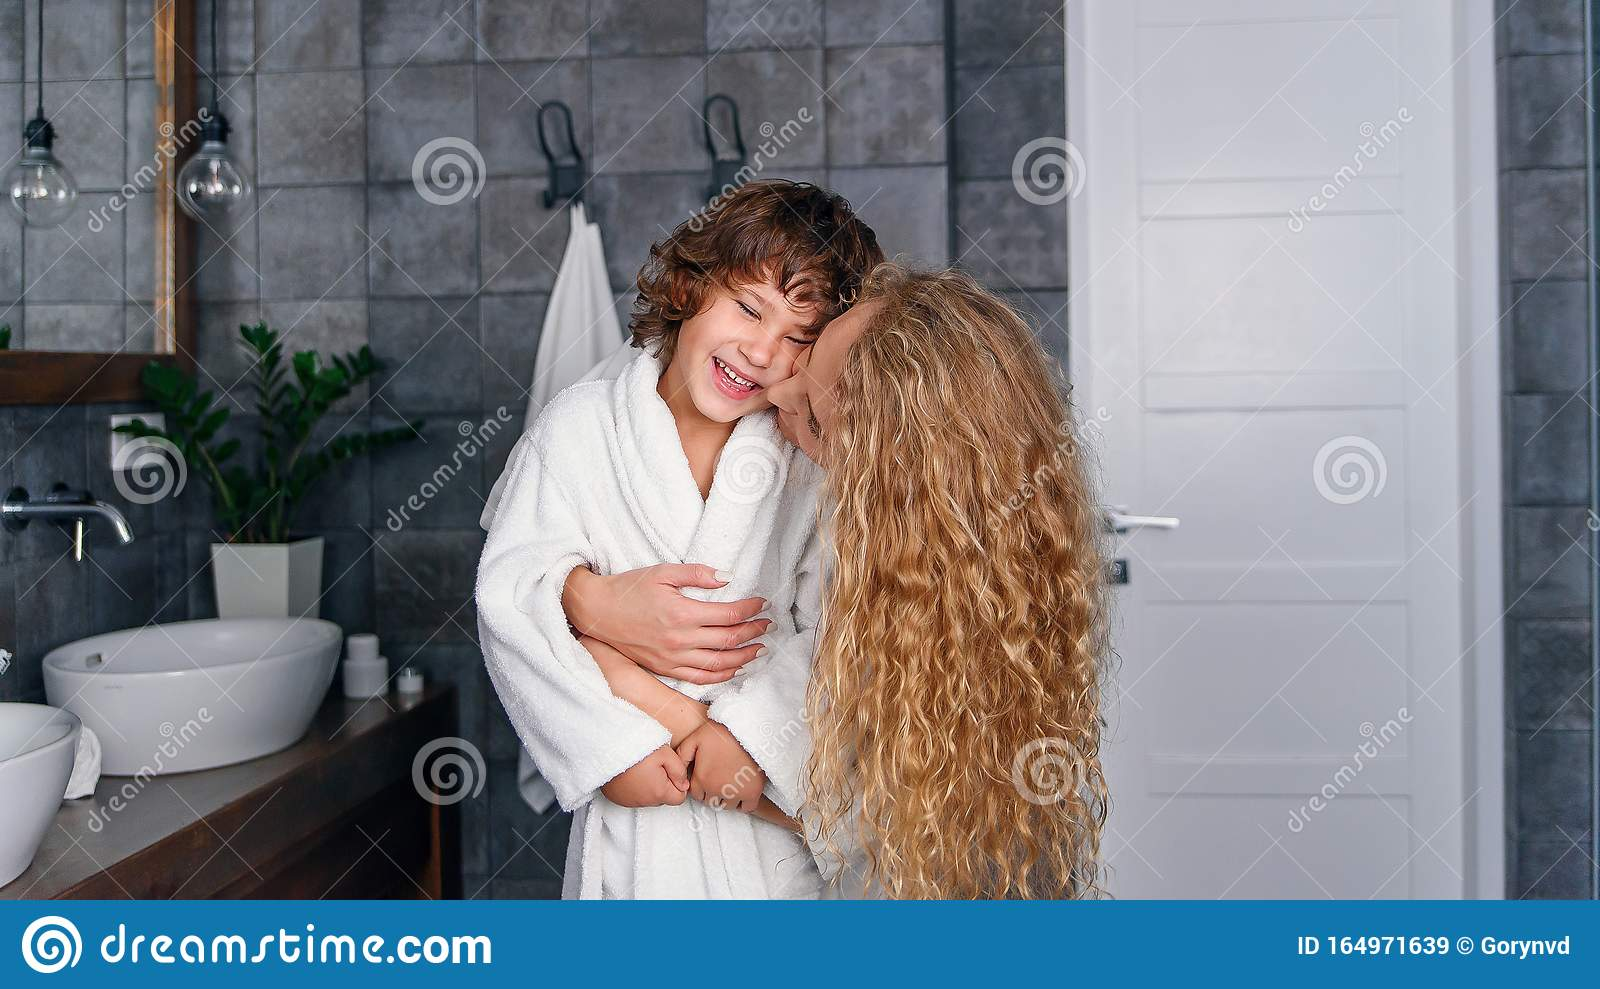 Beautiful Mother With Curly Hair In A White Bathrobe Hugs Her Little Smiling Son In The Bathroom Stock Image Image Of Cheerful Cozy 164971639